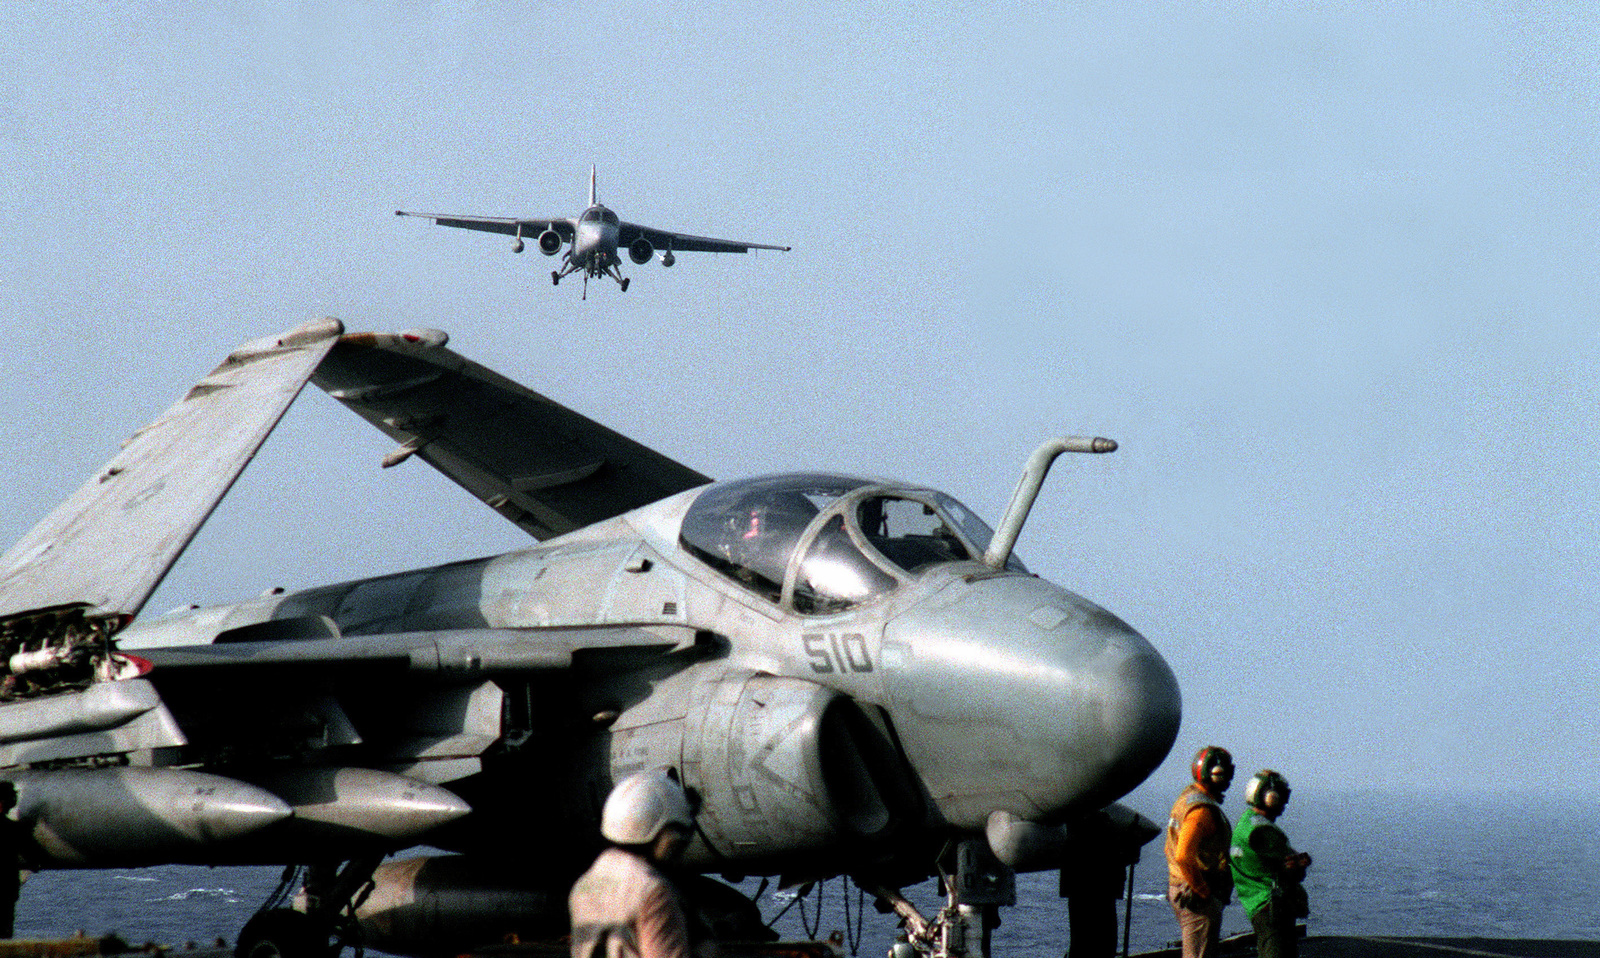 An Air Test and Evaluation Squadron 1 (VX-1) ES-3A Shadow aircraft approaches the flight deck of the aircraft carrier USS SARATOGA (CV-60) during the NATO exercise Display Determination '92. An A-6E Intruder aircraft is in the foreground